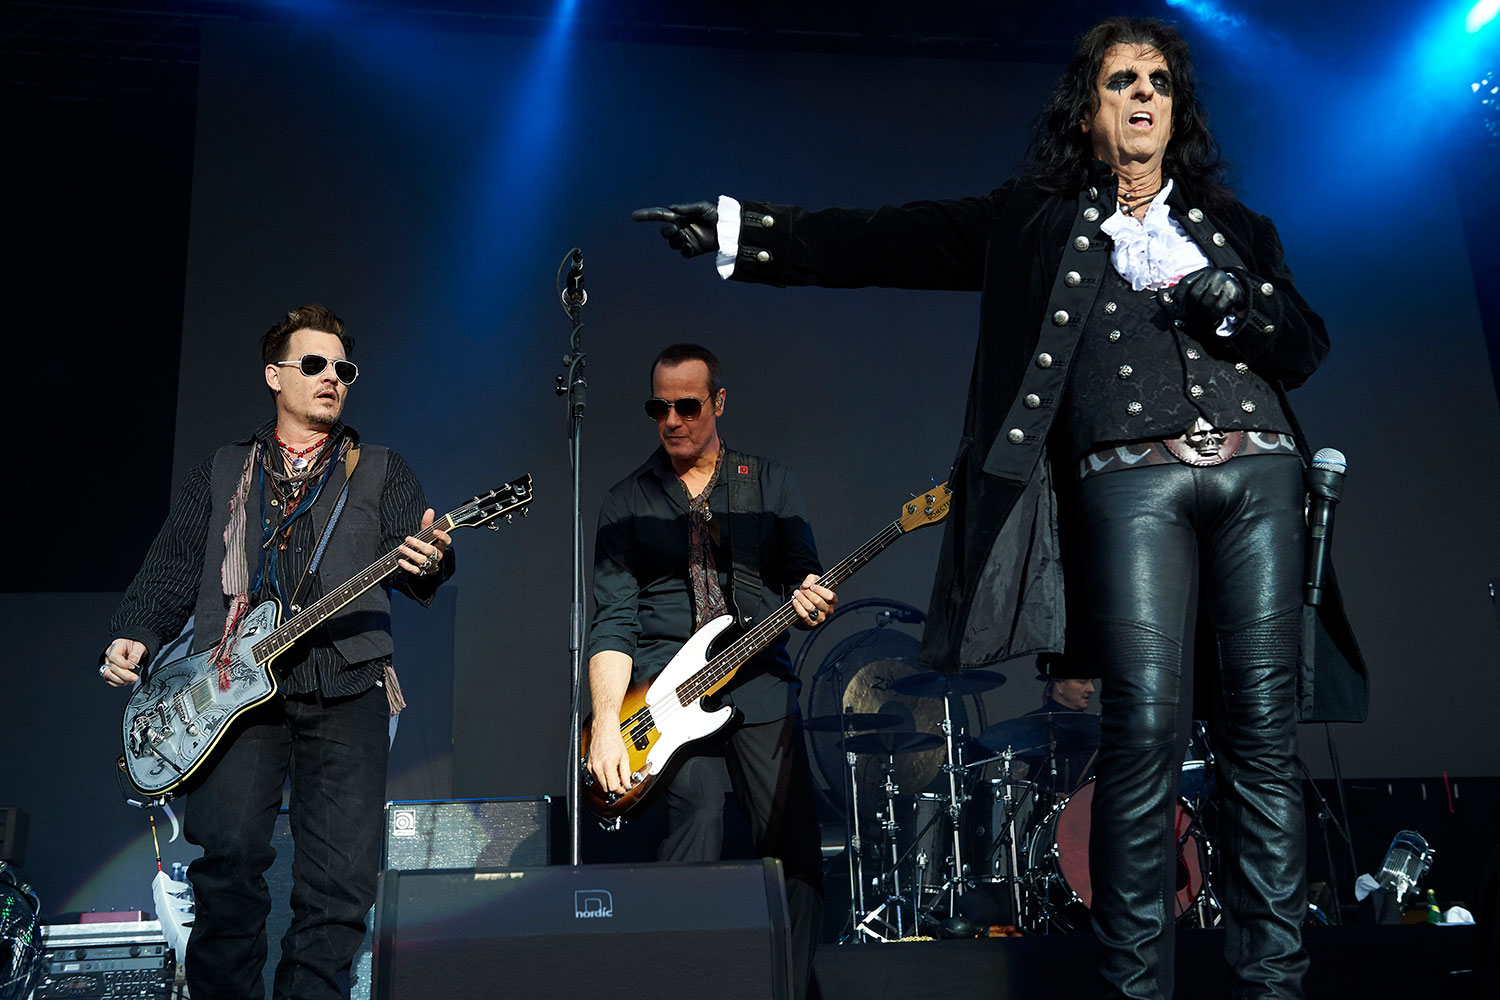 Johnny Depp, left, and Alice Cooper, right, lead the Hollywood Vampires during a performance in Denmark on June 1. (Claus Bonnerup/Polfoto via AP)